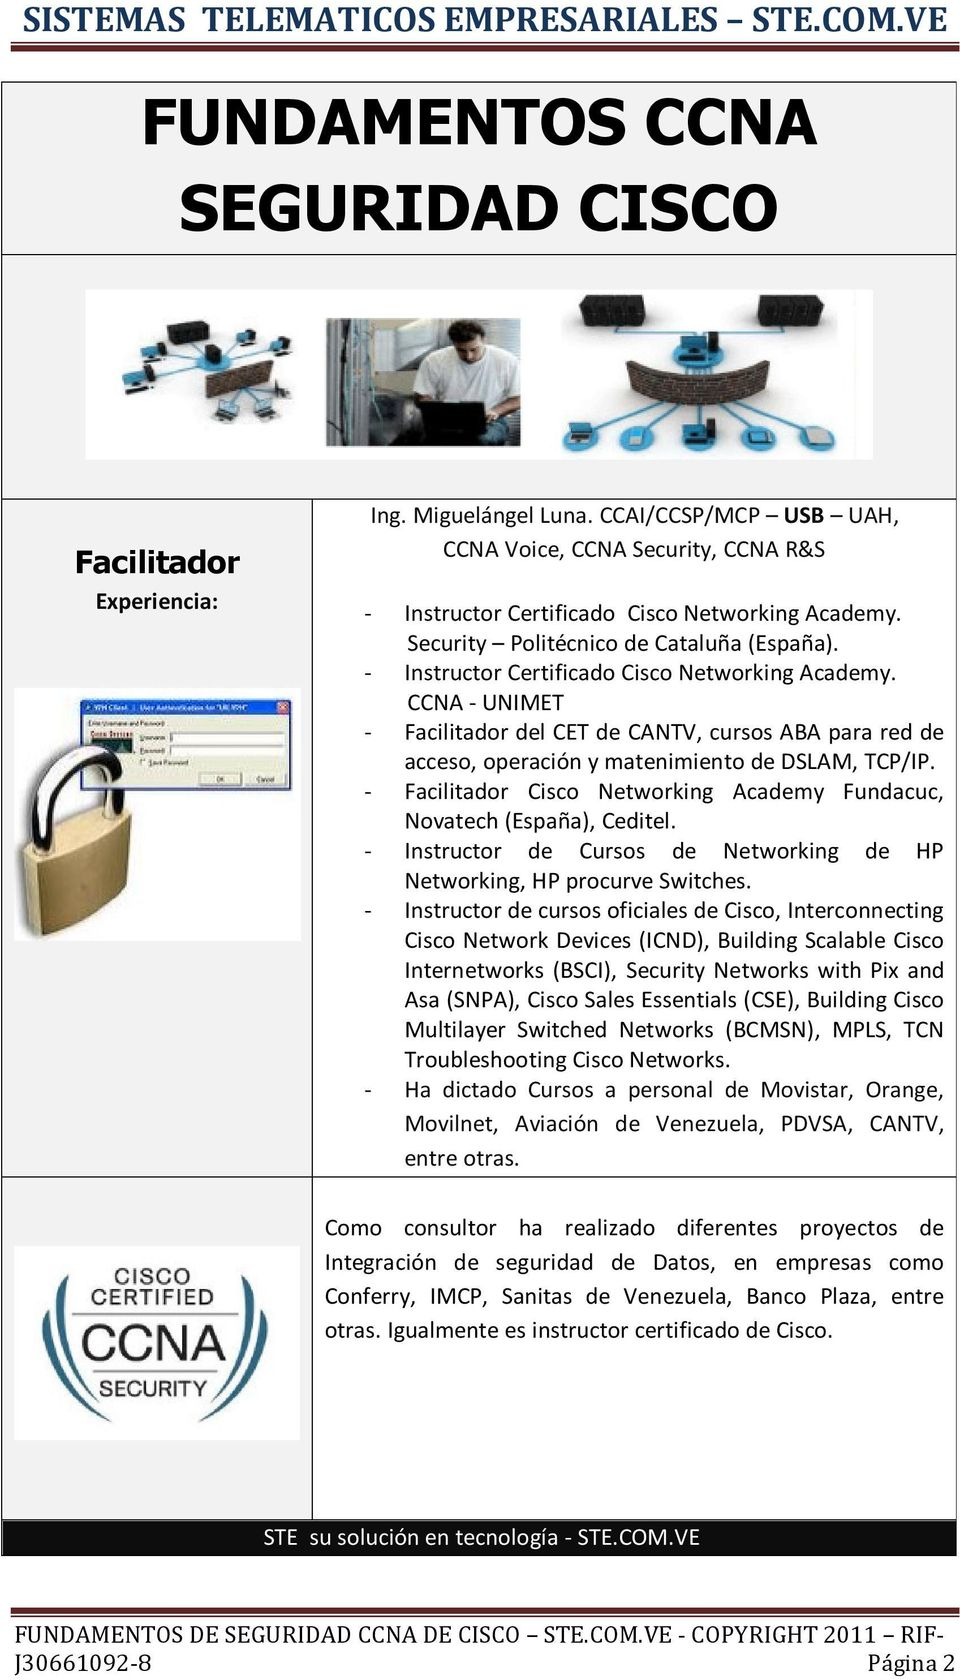 - Facilitador Cisco Networking Academy Fundacuc, Novatech (España), Ceditel. - Instructor de Cursos de Networking de HP Networking, HP procurve Switches.